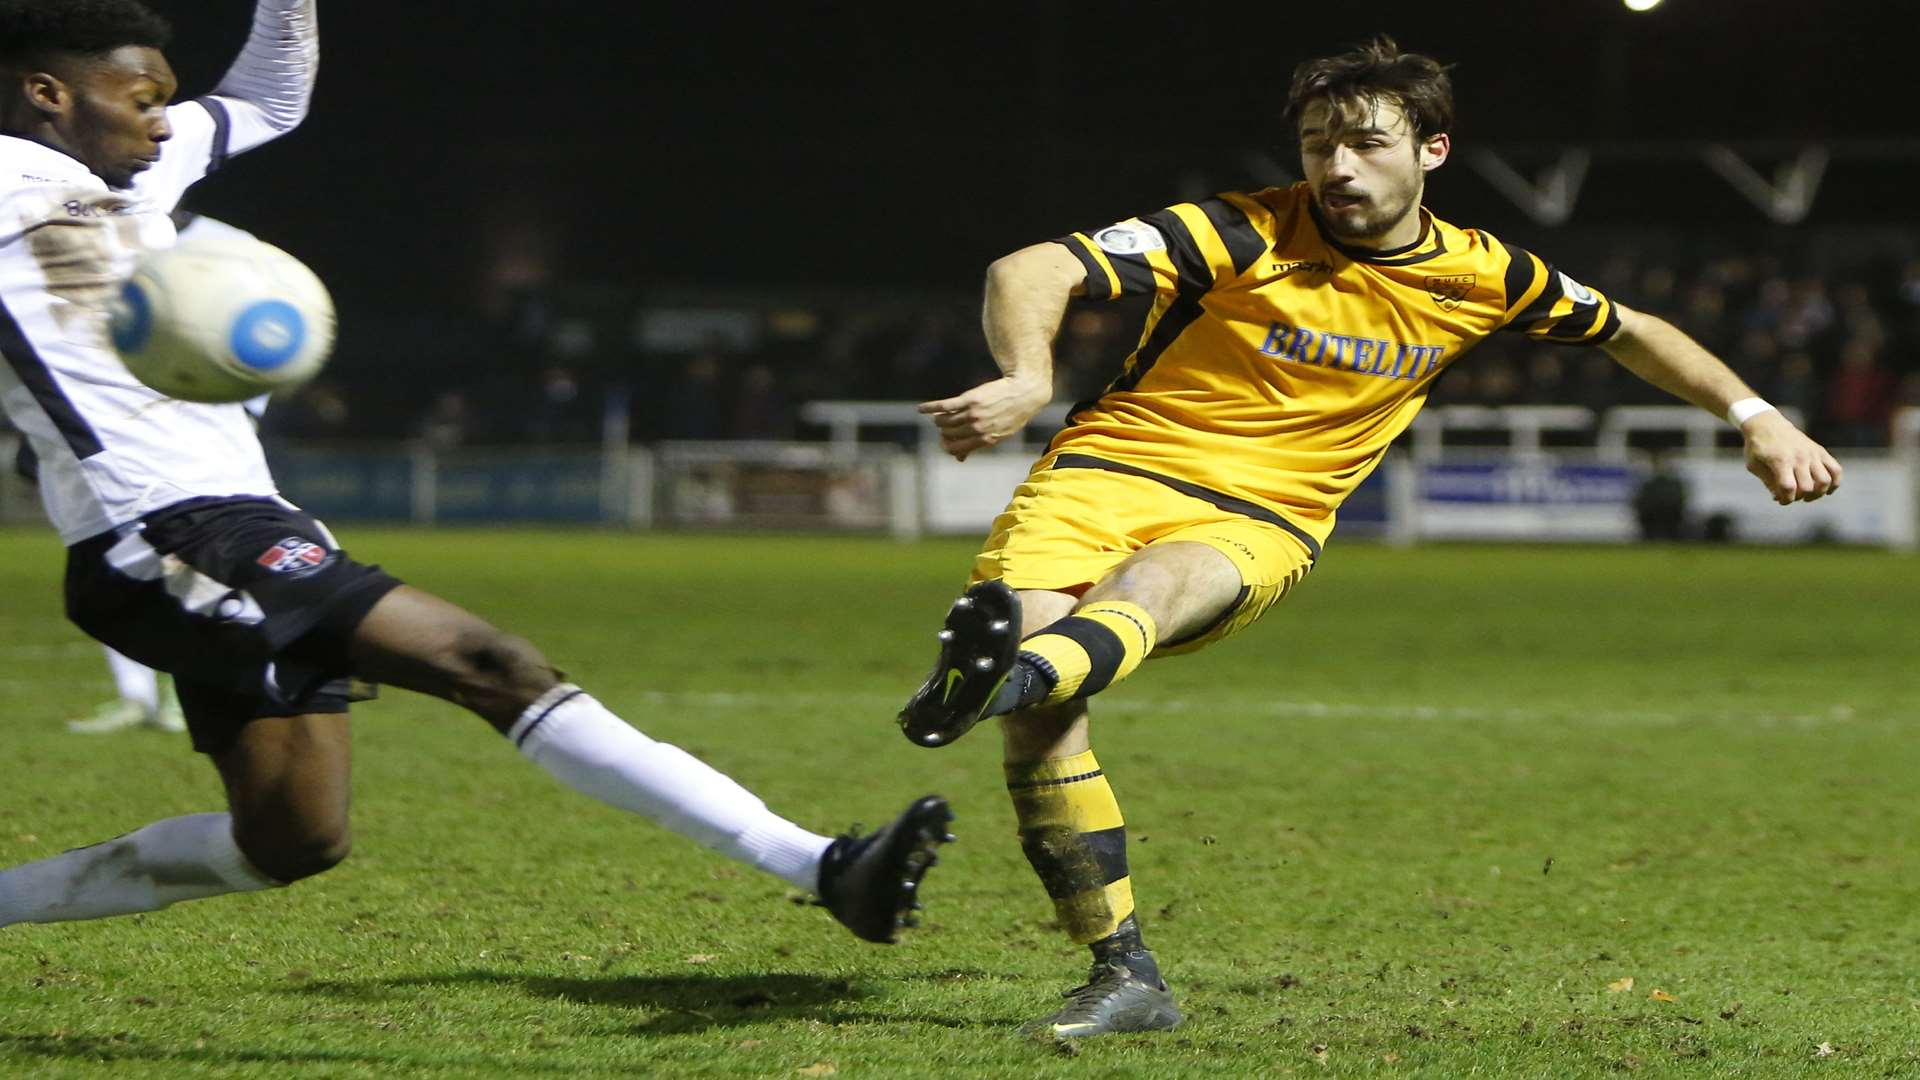 Tom Mills in action for Maidstone Picture: Andy Jones